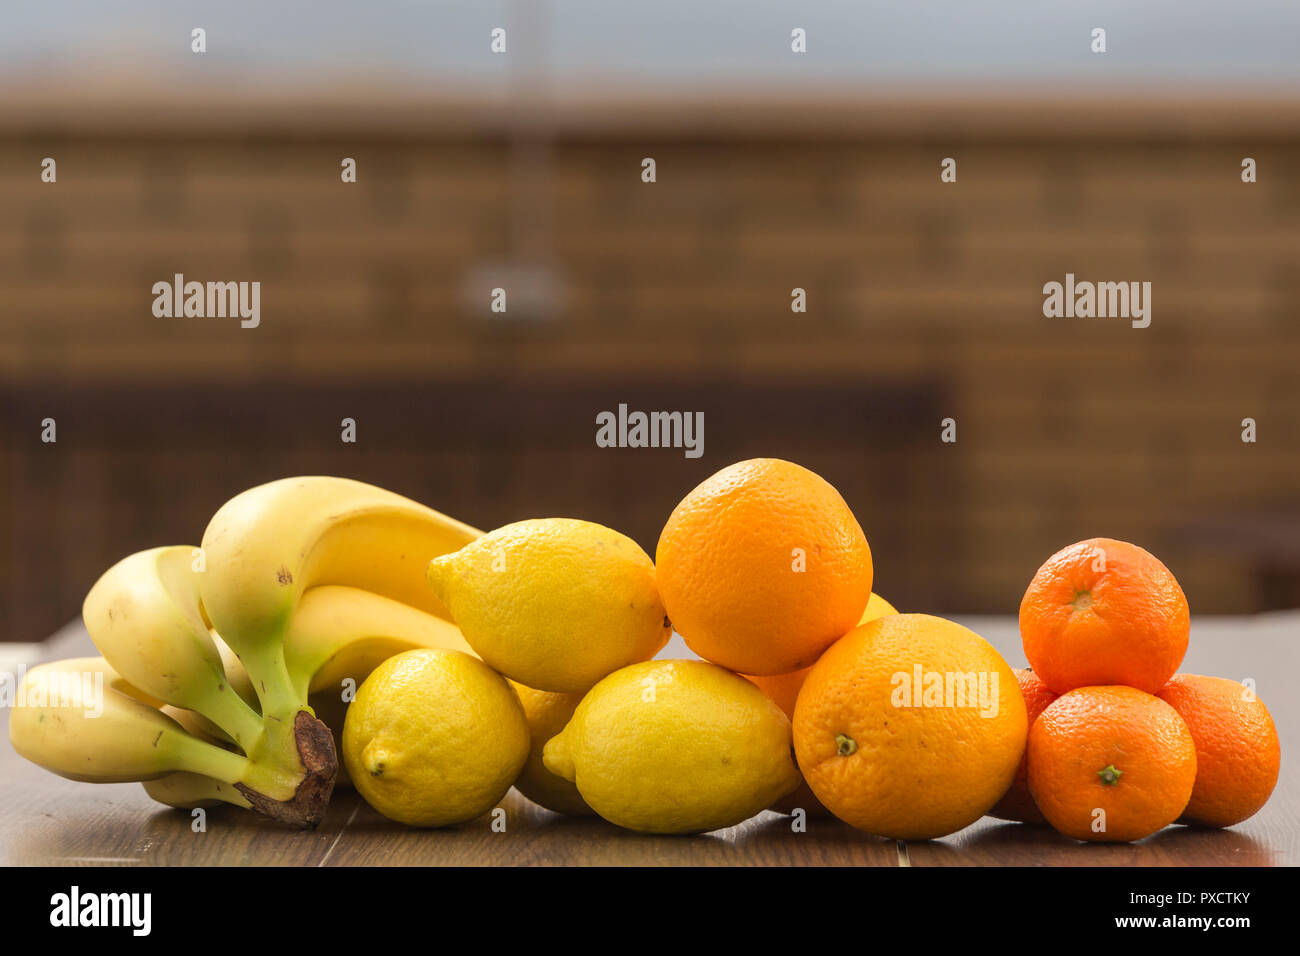 Still life with oranges, lemons, bananas and tangerines placed together in groups, on a background and surface of brown tones - Stock Image